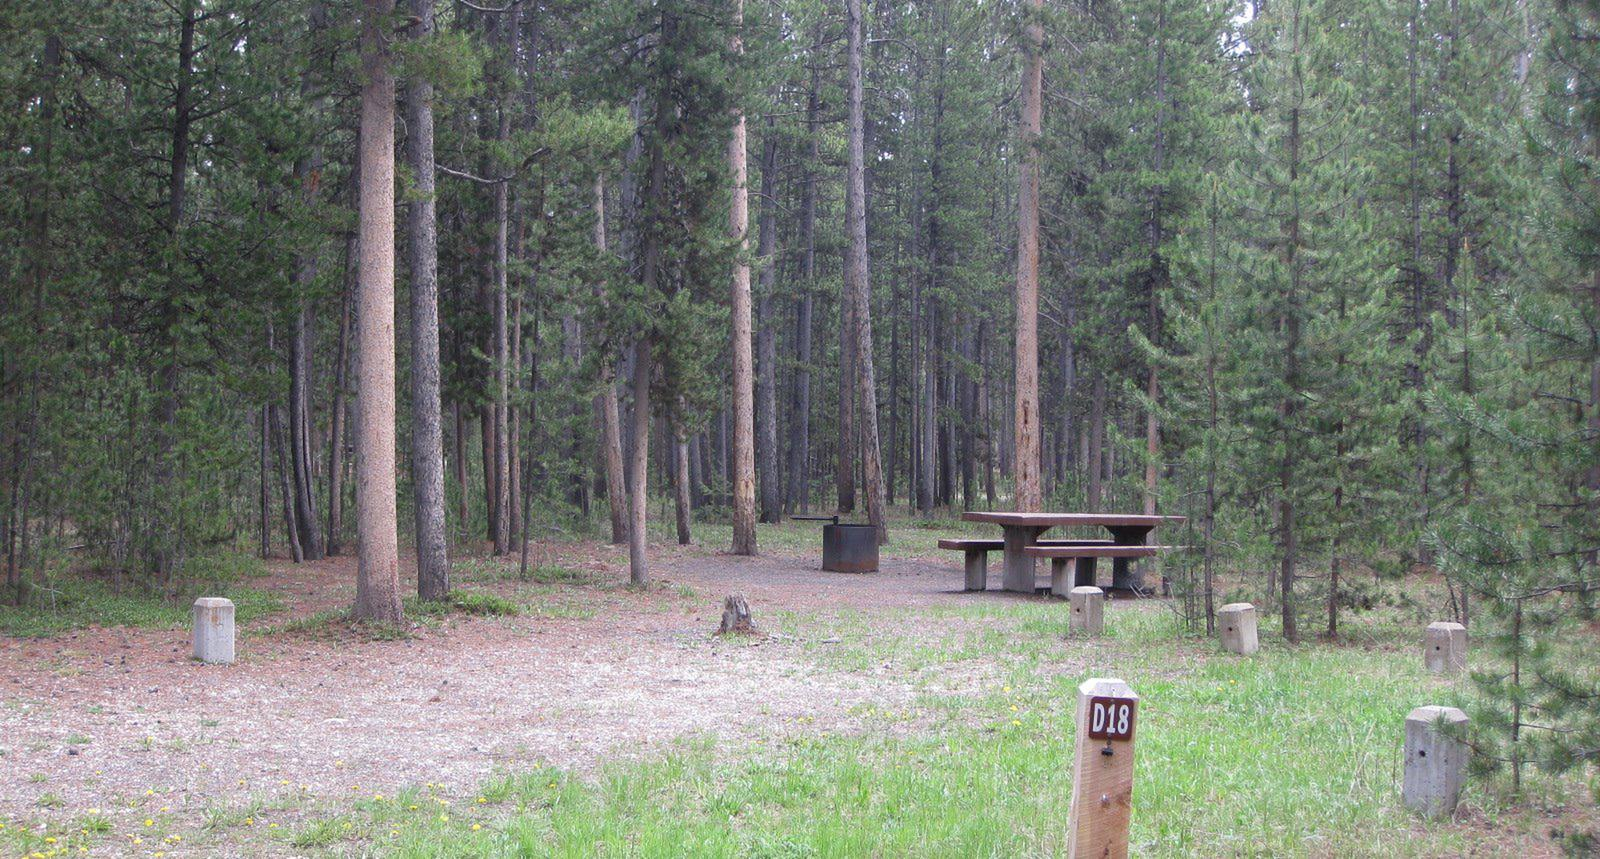 Site D18, surrounded by pine trees, picnic table & fire ringSite D18